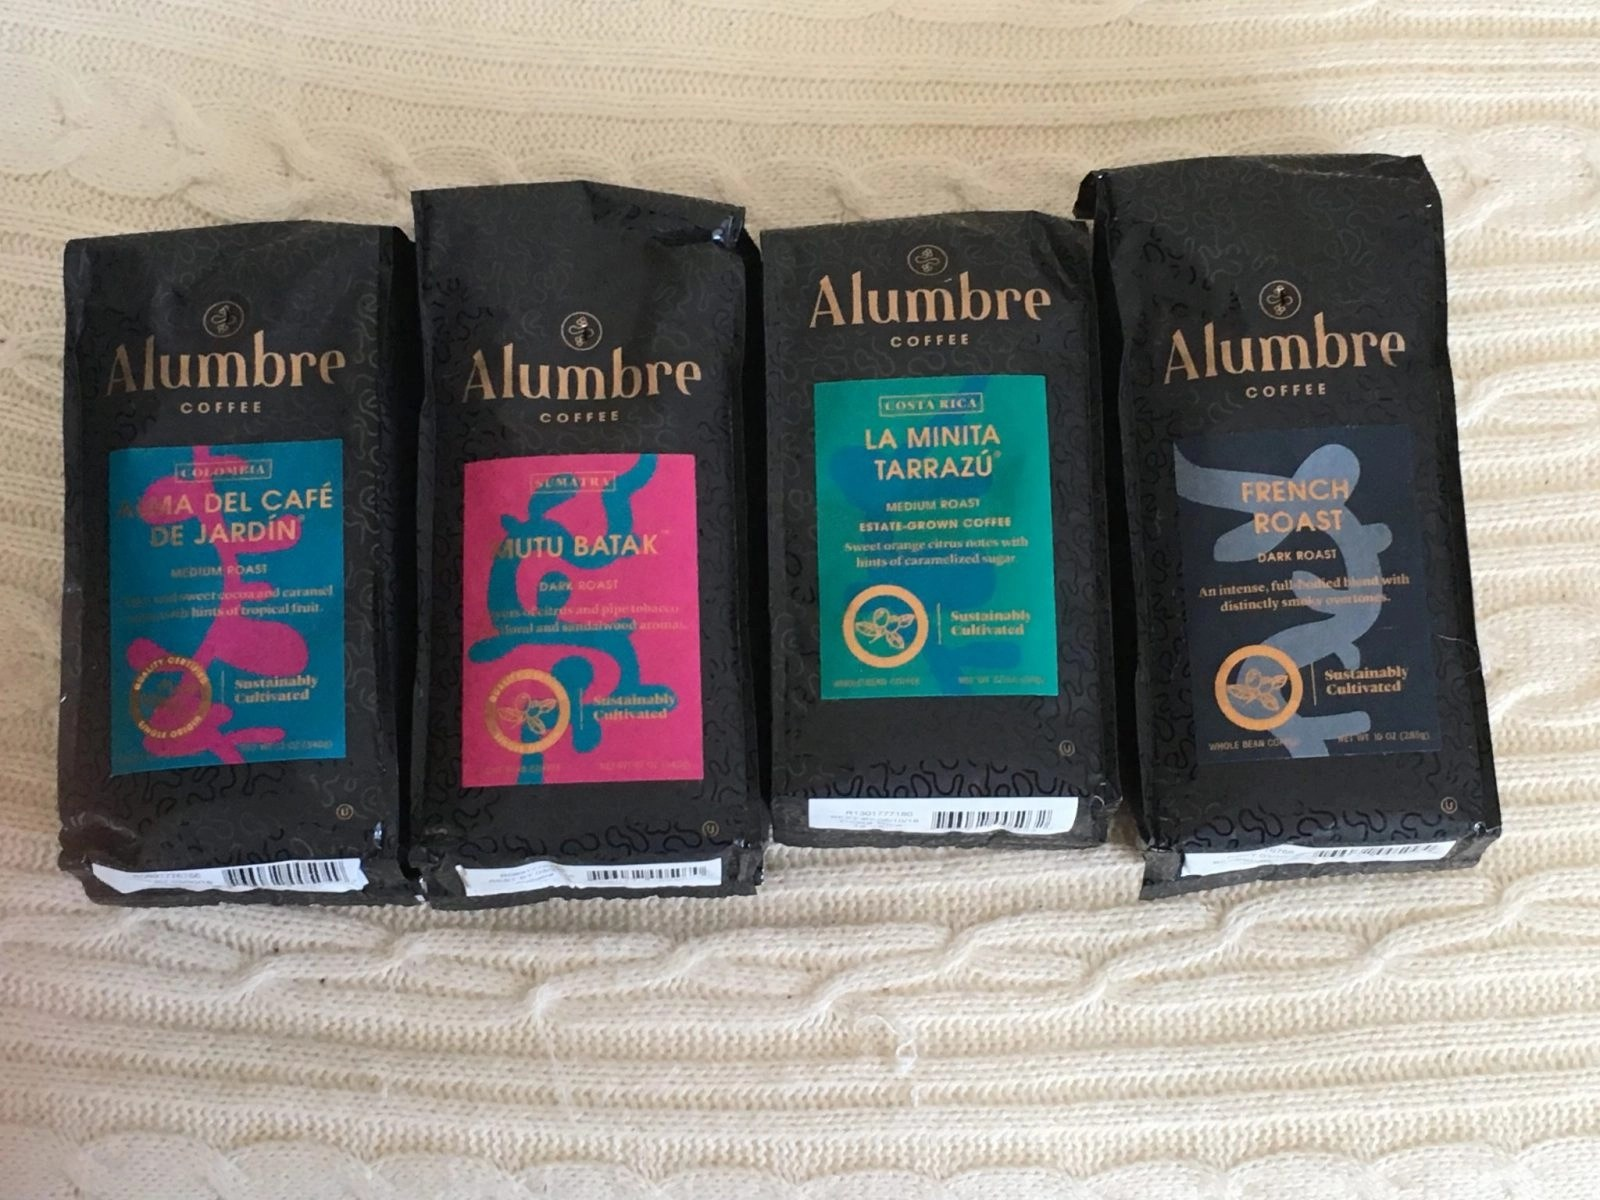 Alumbre Coffee Bags Lined Up